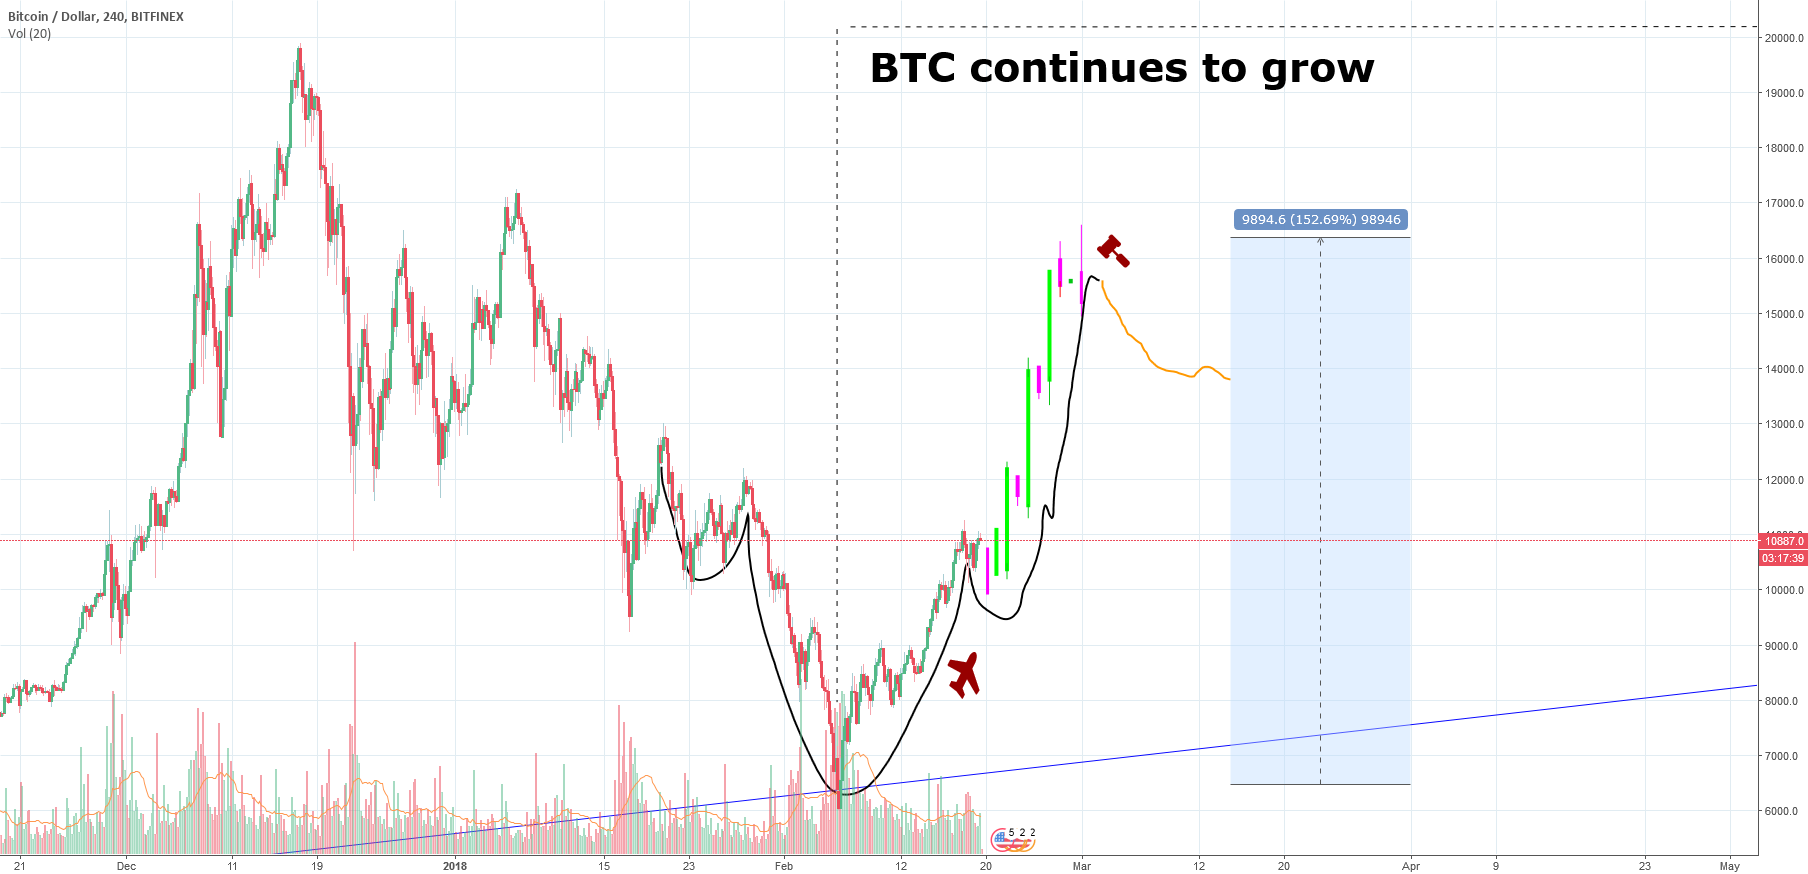 BTC continues to grow